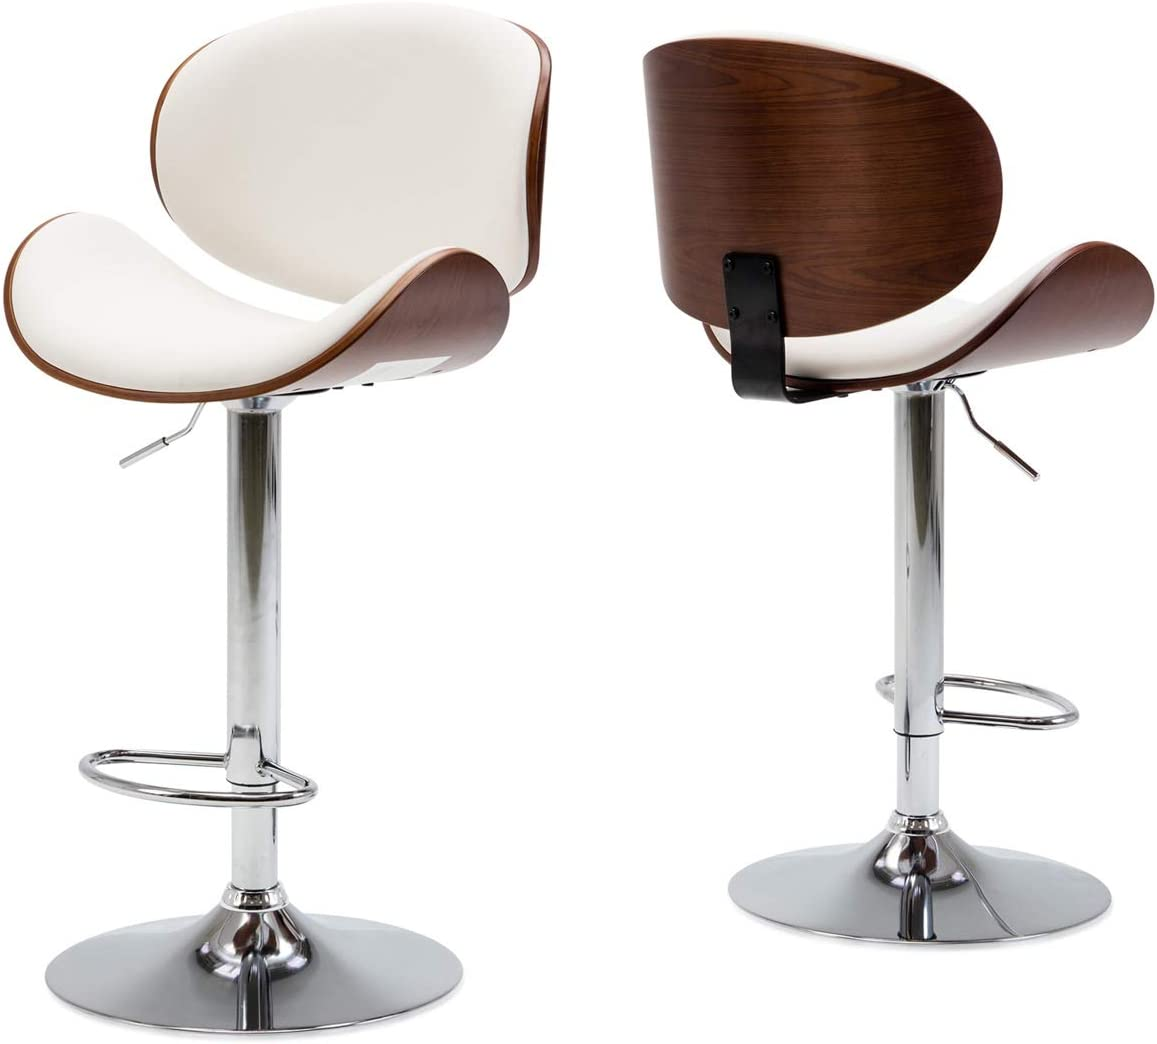 BELLEZE Set of 2 Contemporary Upholstered Faux Leather Mid-Century Walnut Bar Stool Chrome Base Adjustable Swivel Barstool, White